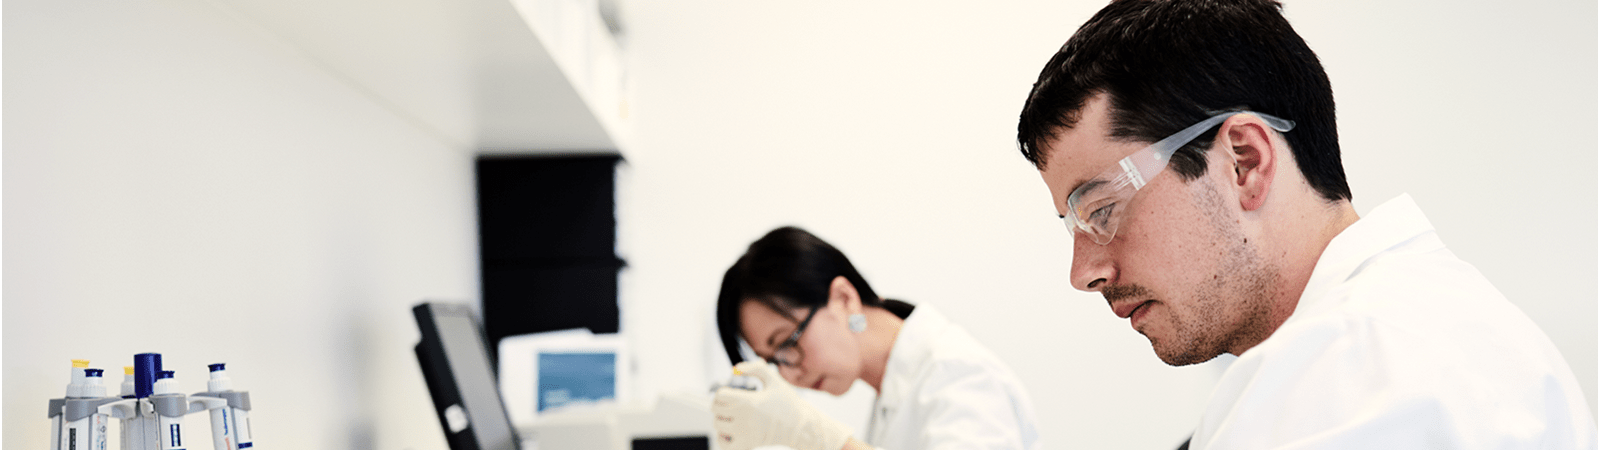 Two research scientist in a lab